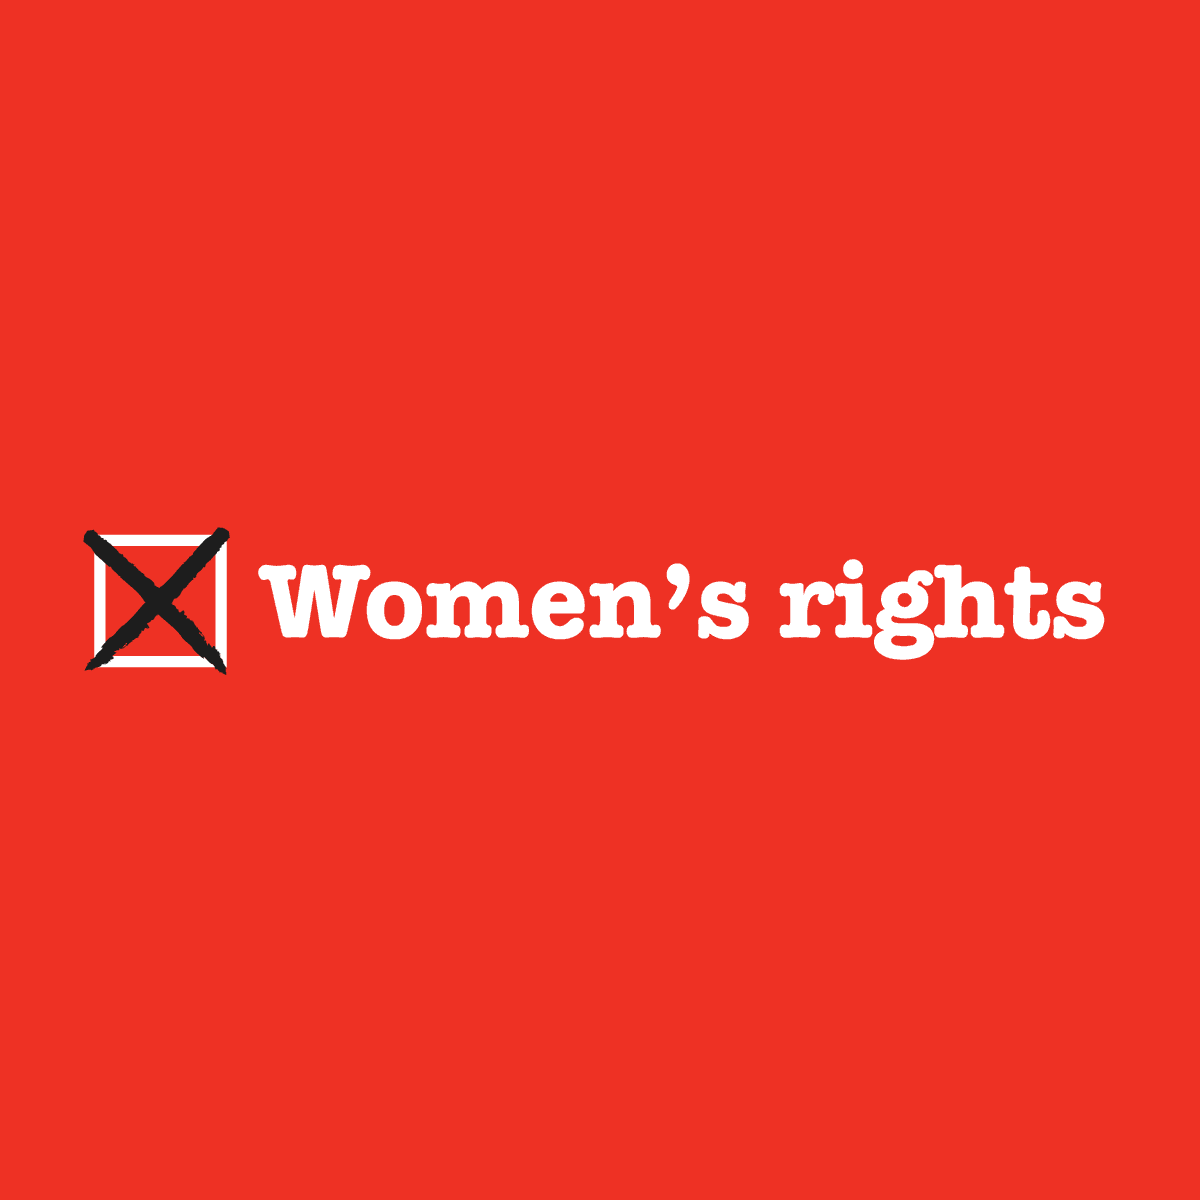 📮 Do you want the UK government to continue protecting women's rights after the election? Sign our open letter to all future MPs asking them to pledge to protect women's rights globally. It will only take two minutes. ✍🏽 https://t.co/tdV6BWs0Bh #16DaysOfActivism #16days https://t.co/RNcMeEJjj9